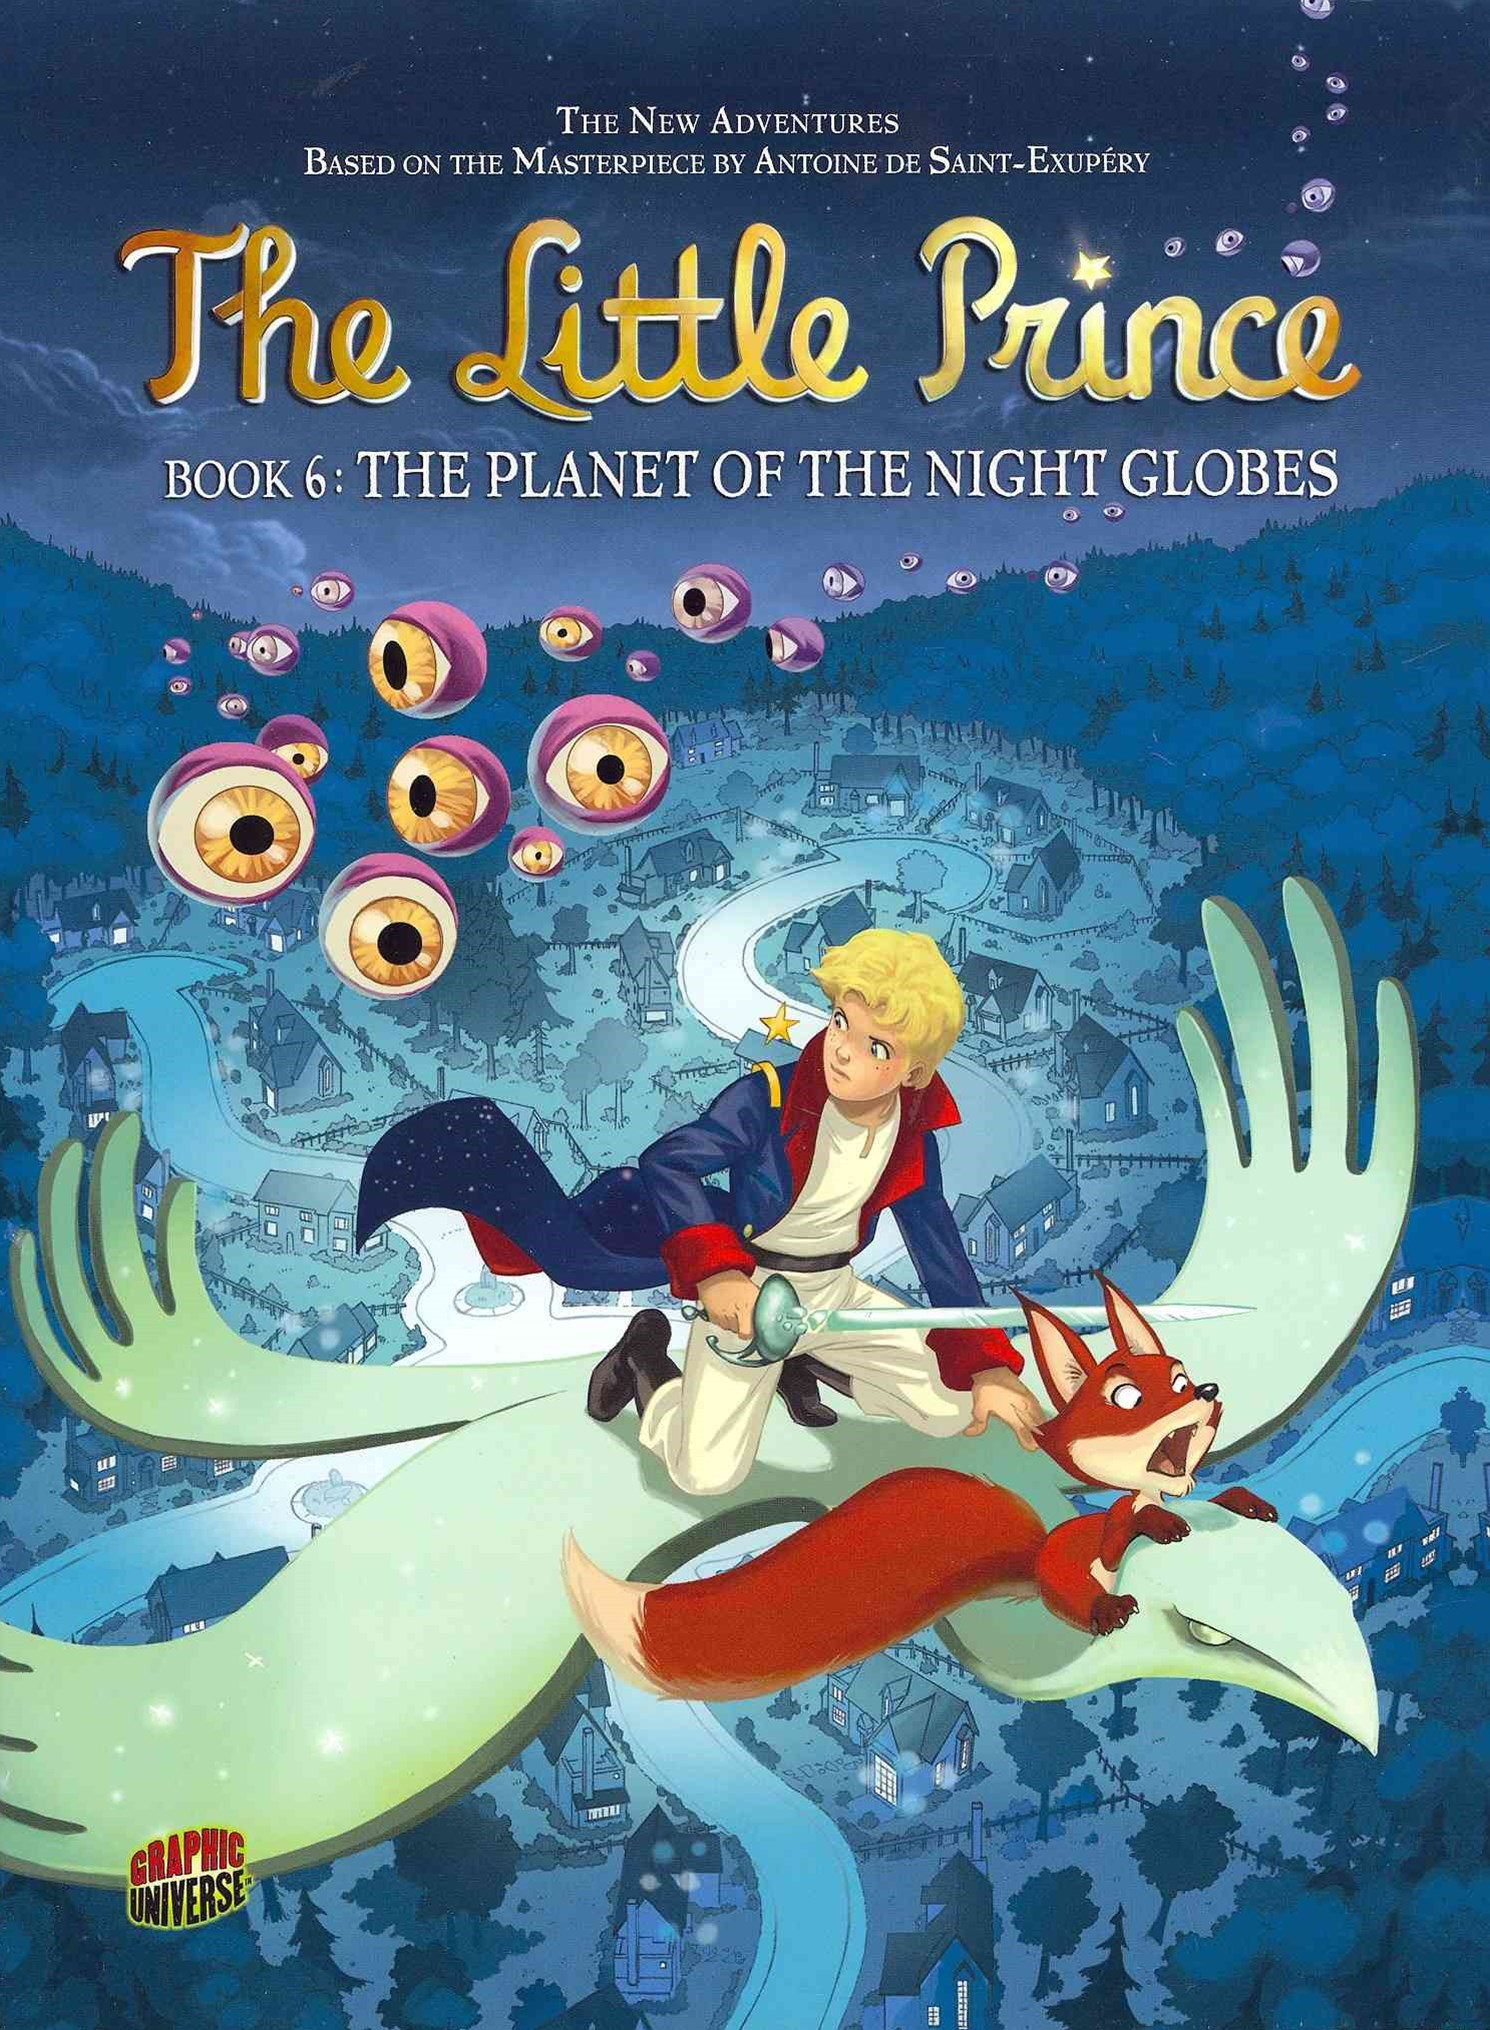 The Little Prince Book 6: The Planet of the Night Globes